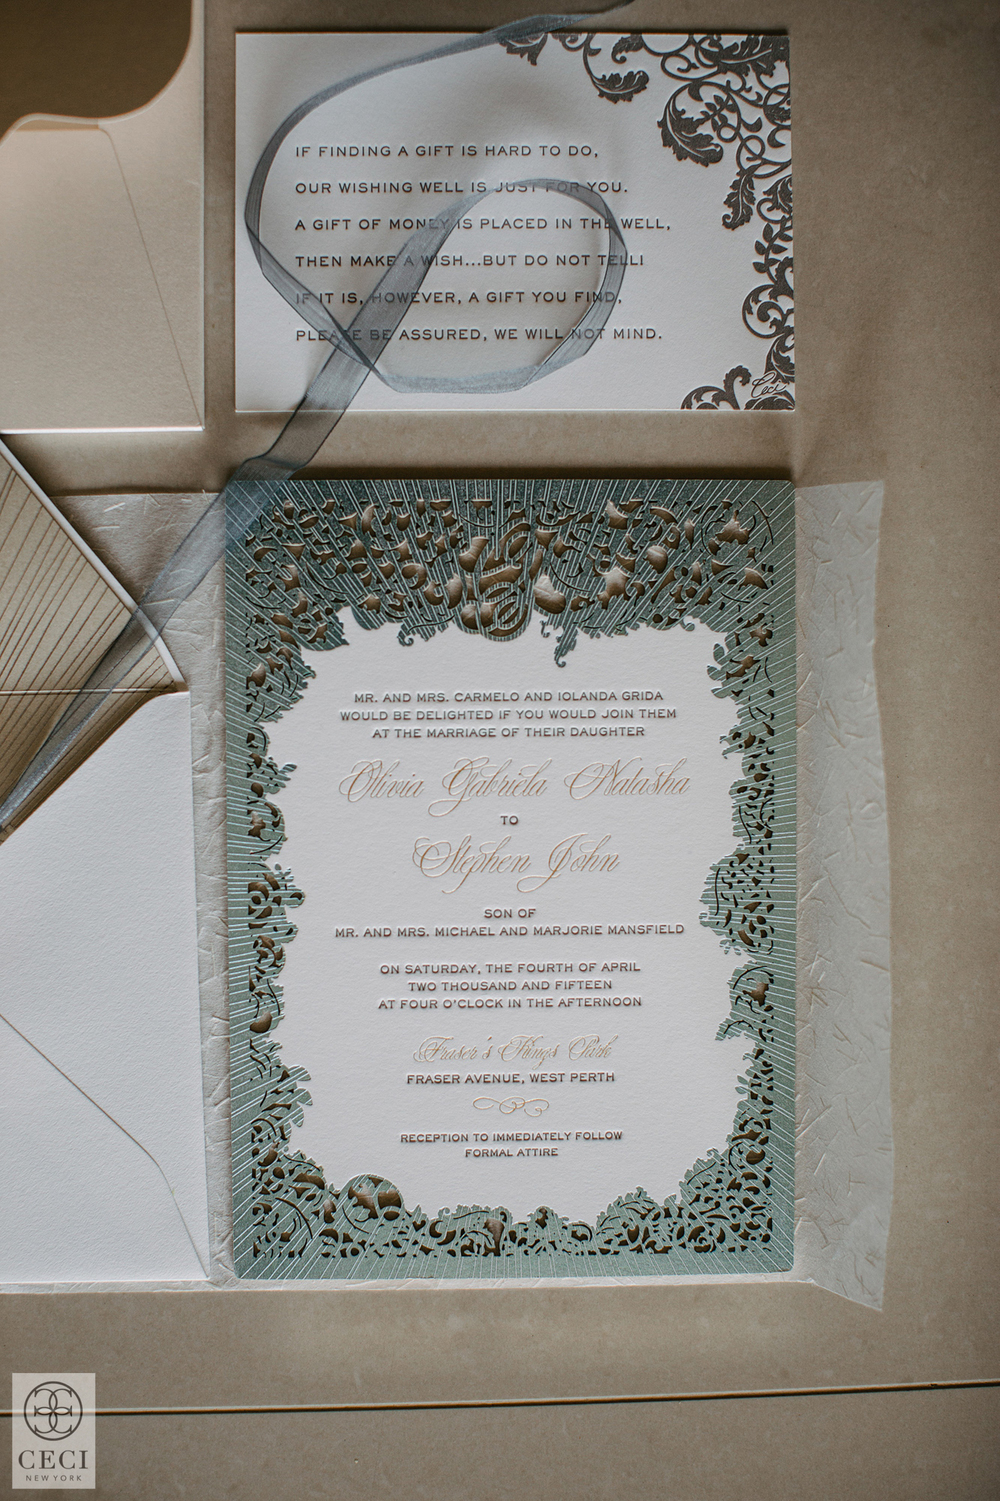 Ceci_New_York_Custom_Luxury_Wedding_BeautyShot_LaserCut_Stationery_Personalized_Couture_Foil_Stamping_Perth_Destination_Australia_Chic_-4.jpg